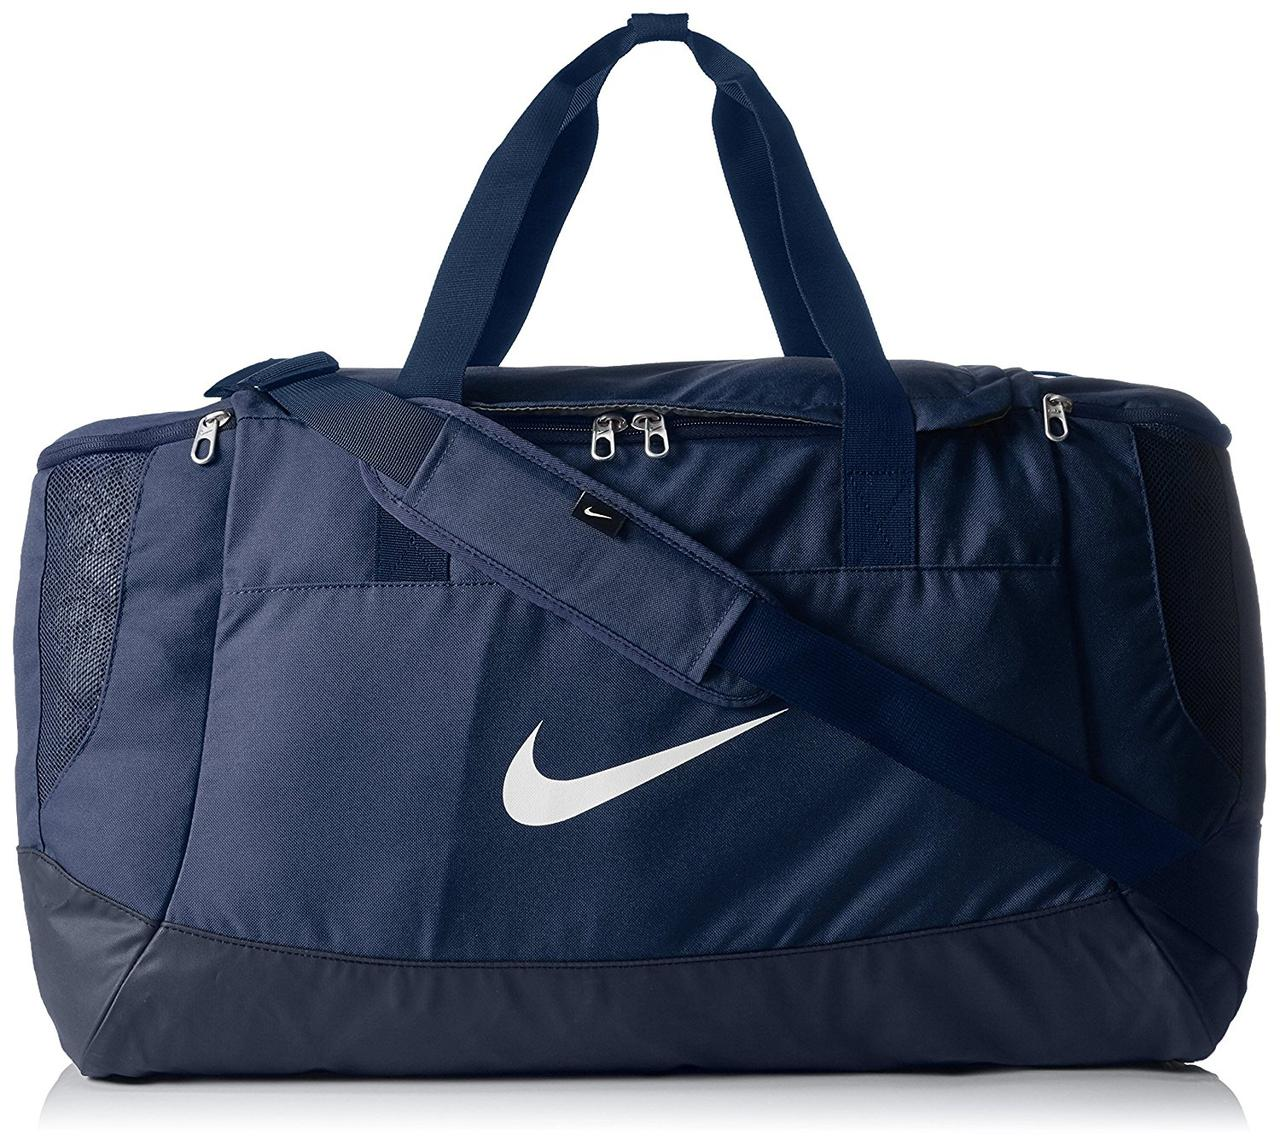 36ed802743d3 Сумка спортивная Nike Club Team Duffel L BA5192-410 (original) 58л, большая